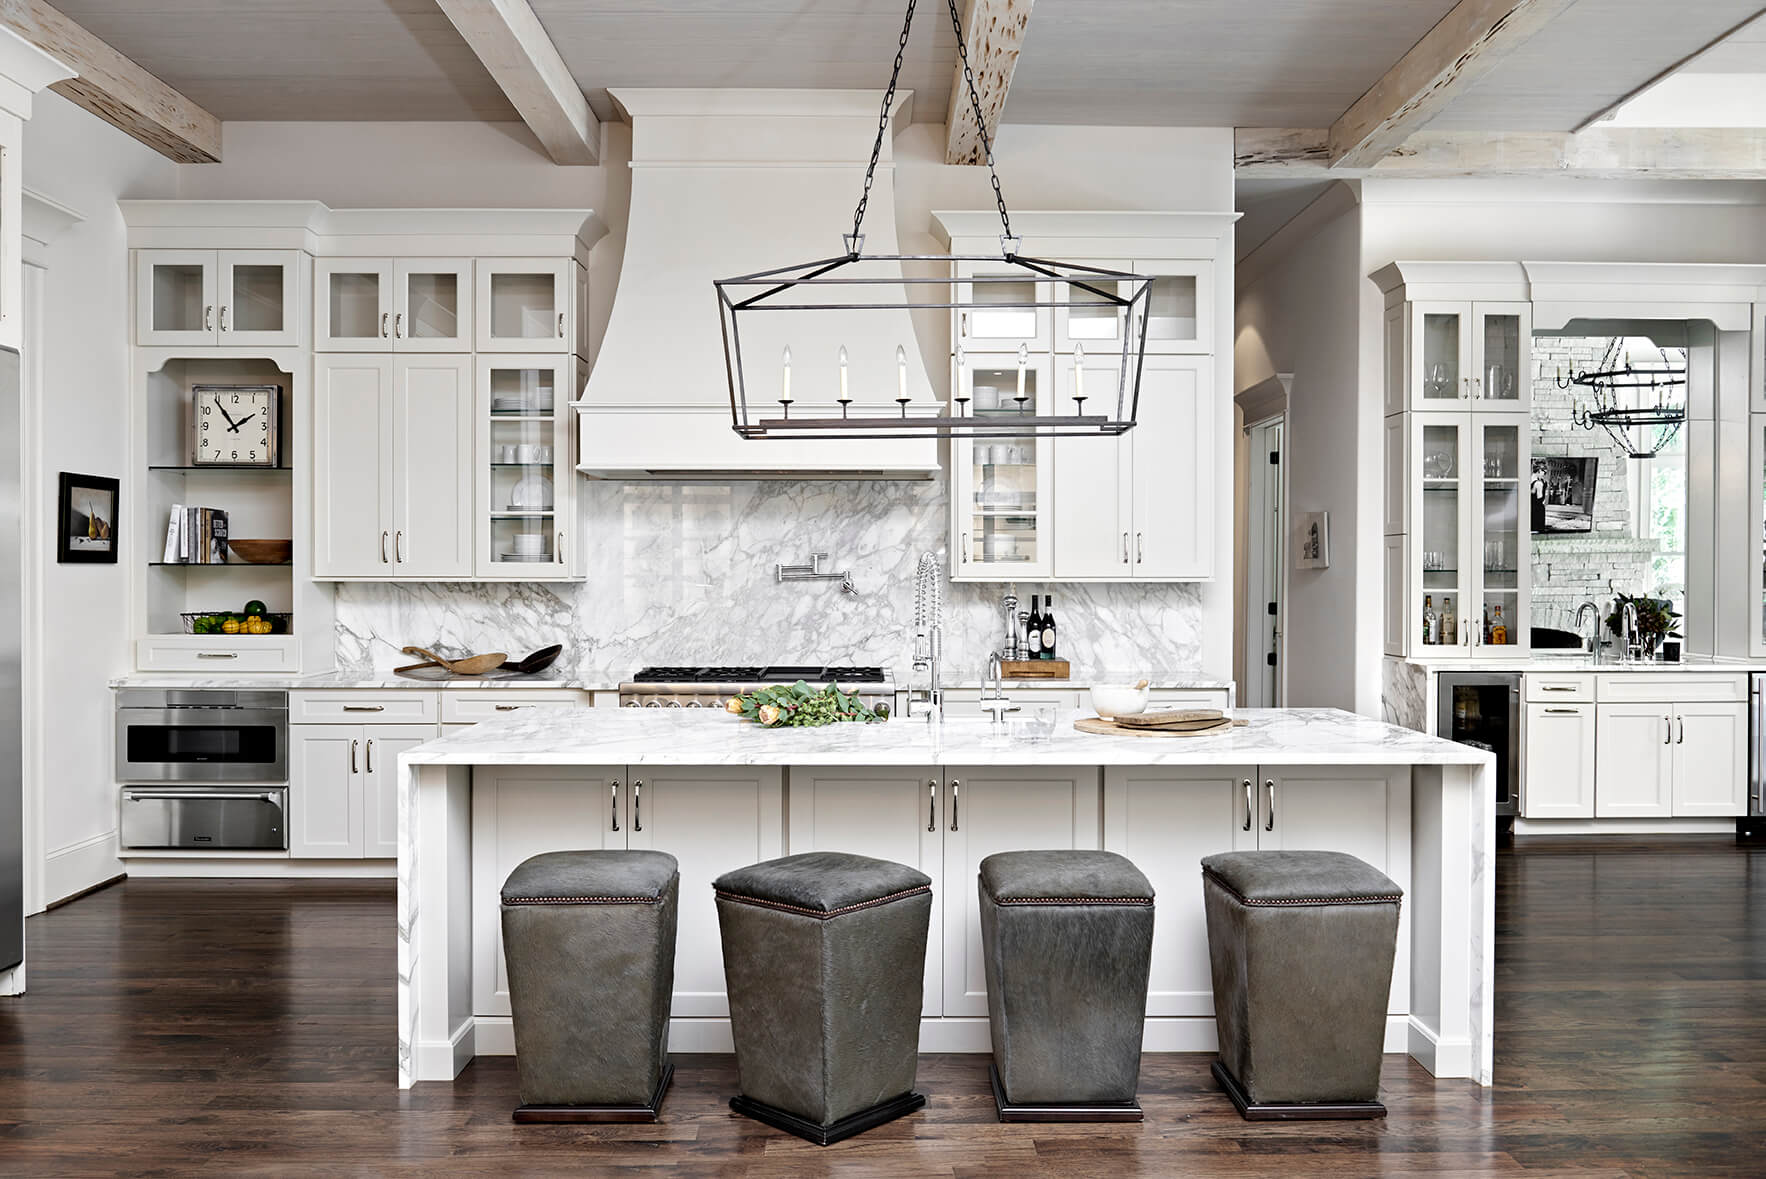 White kitchen with gray marble back splash, elegant upolstered gray seating - Rustic Contemporary Bureau Interior Design Nashville TN